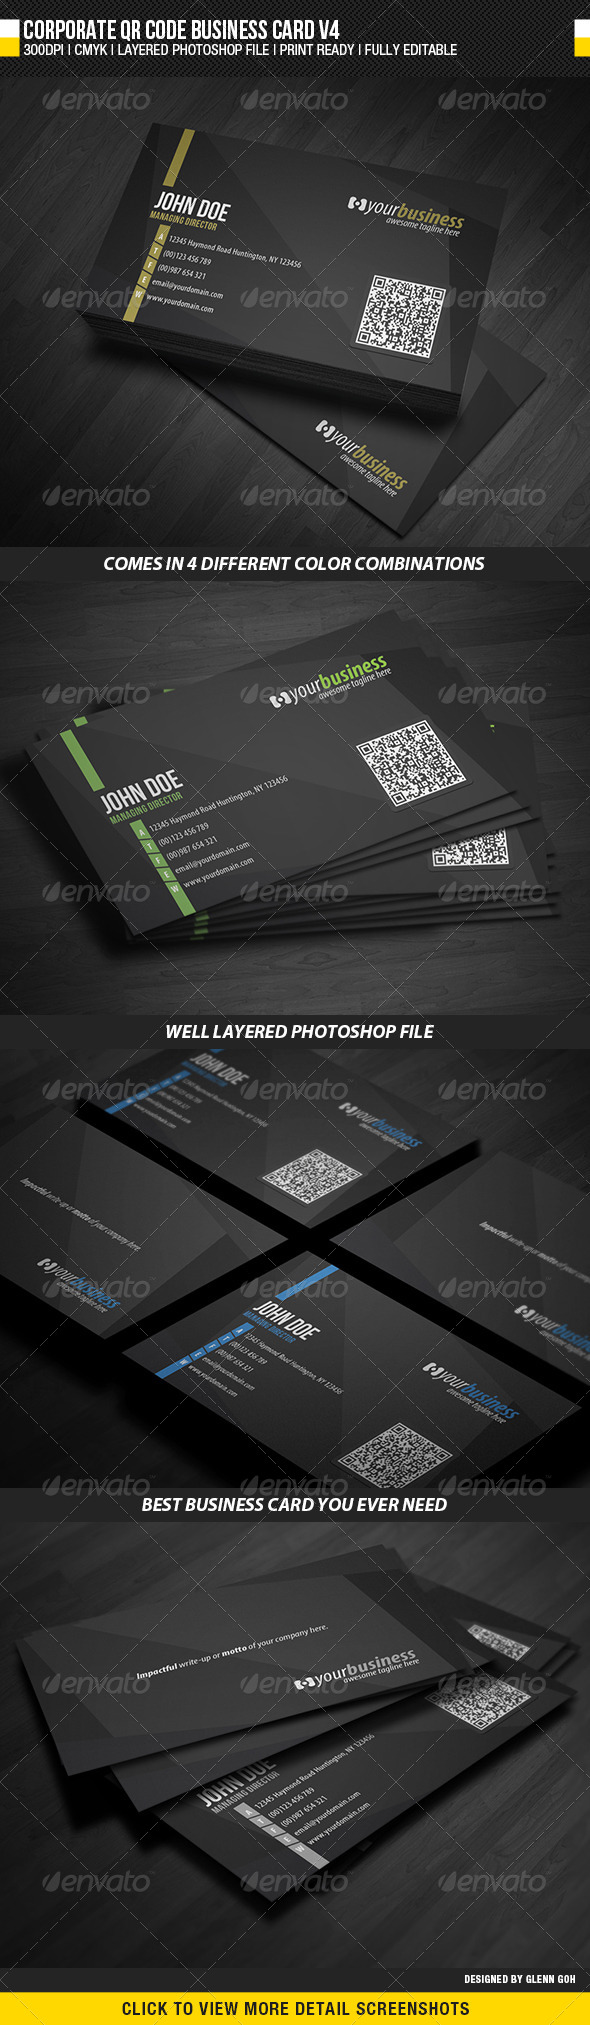 GraphicRiver Corporate QR Code Business Card V4 5328174